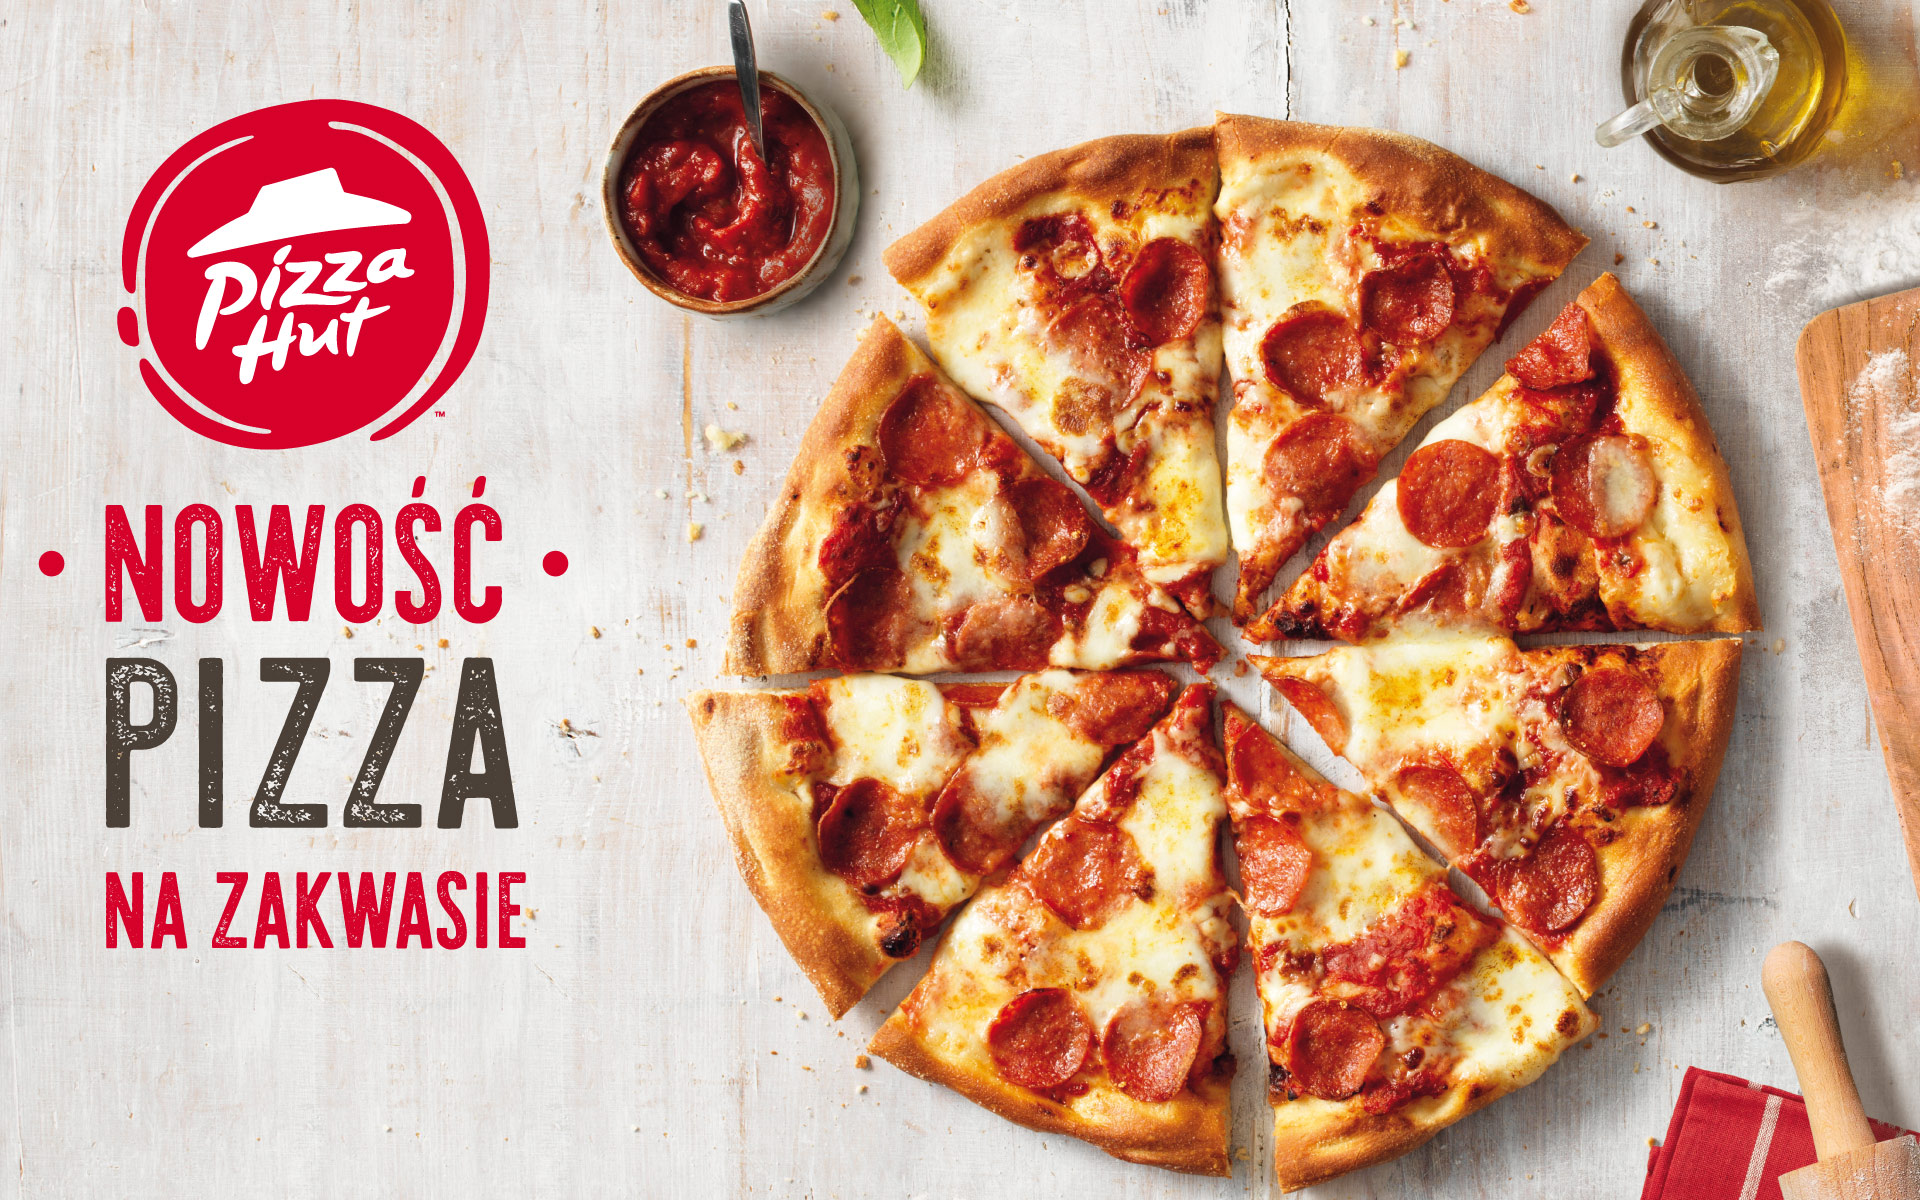 Pizza Hut – pizza na zakwasie